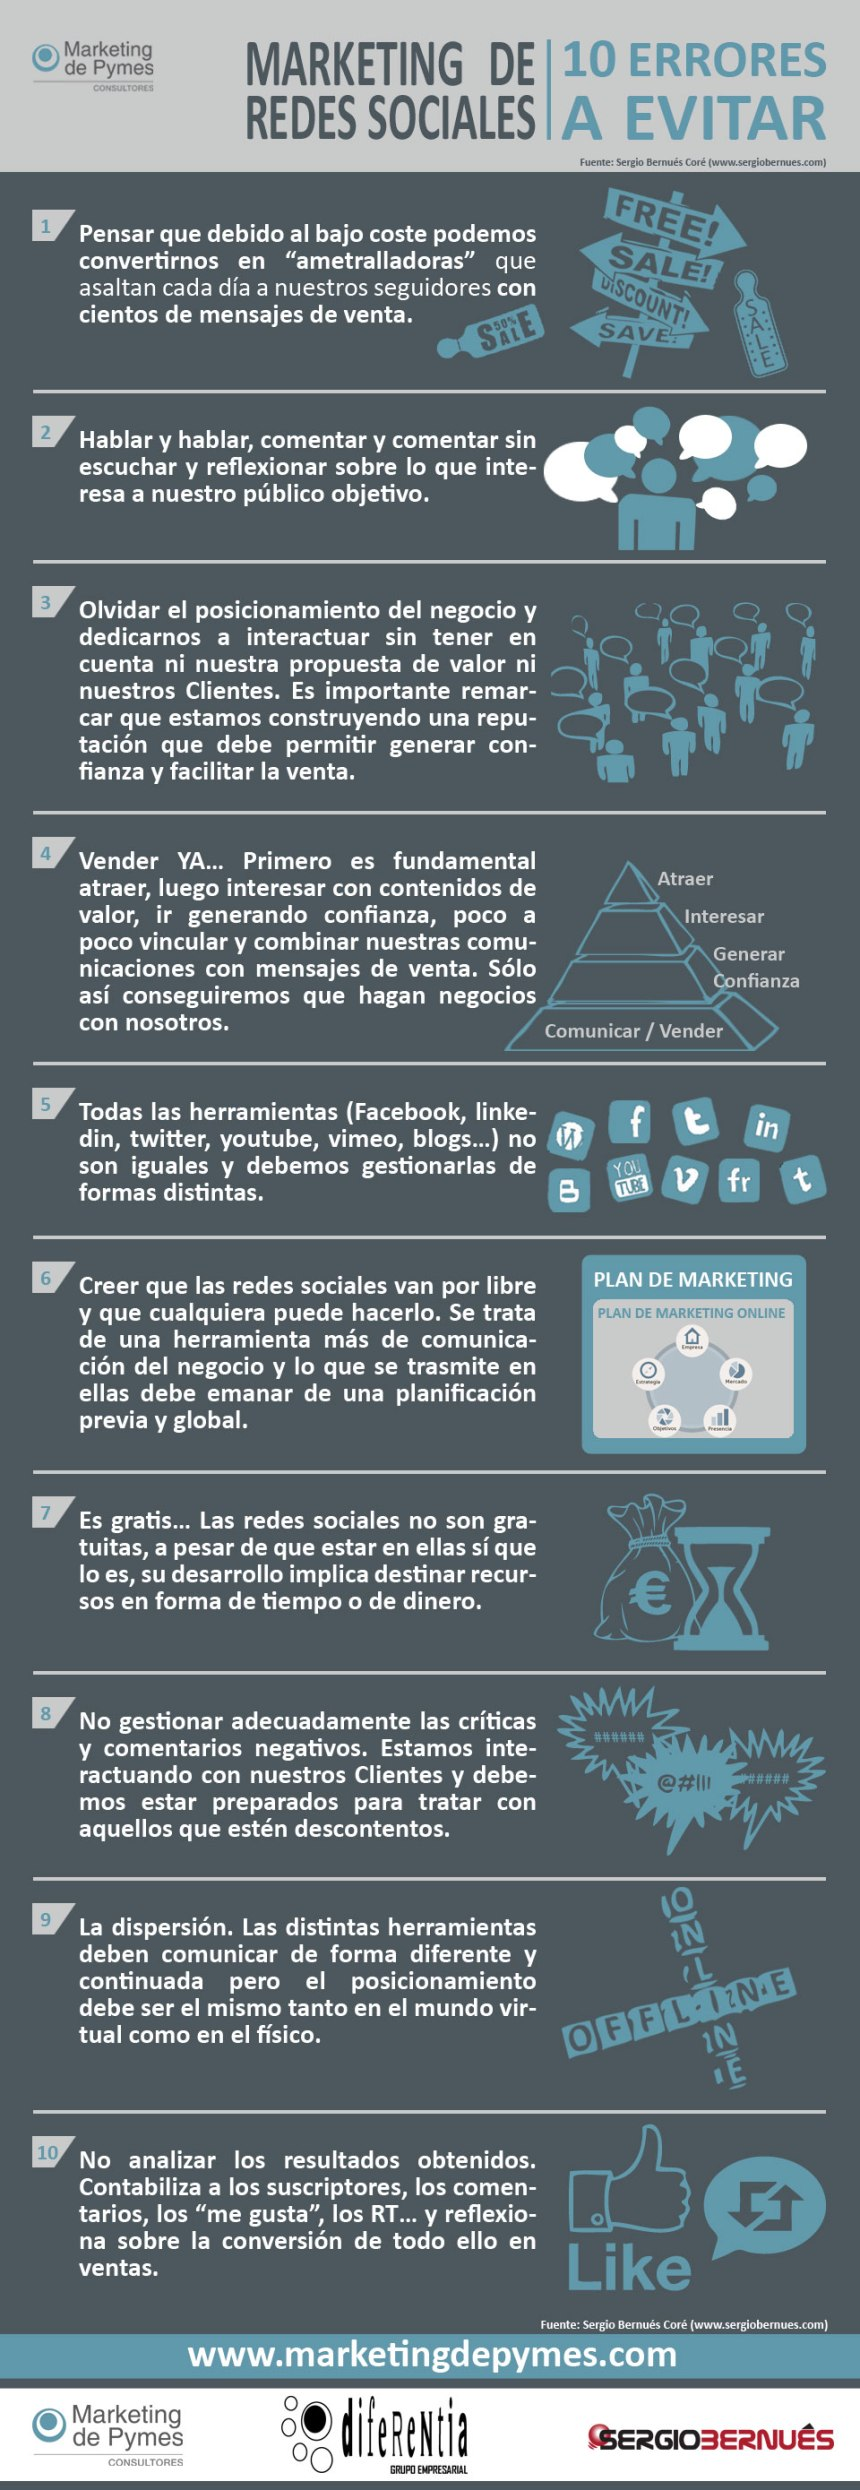 10 errores en marketing en Redes Sociales